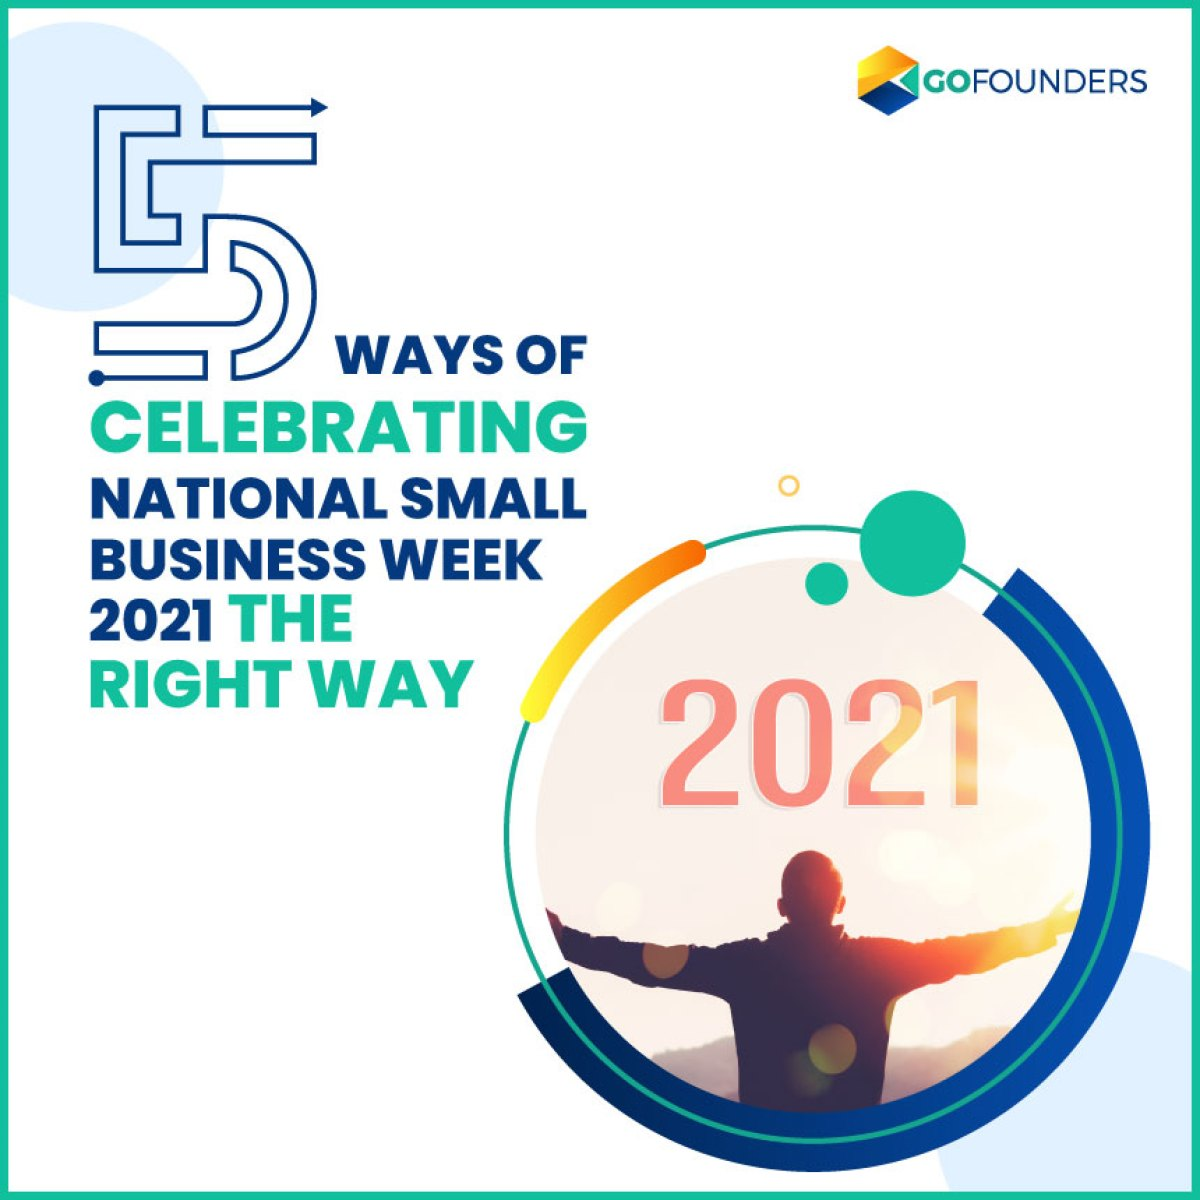 Small businesses contribute significantly to local communities and the national economy. Thus, during this week-long celebration, small businesses and their contribution are appreciated and celebrated. This tradition has been in existence for 50 years now.